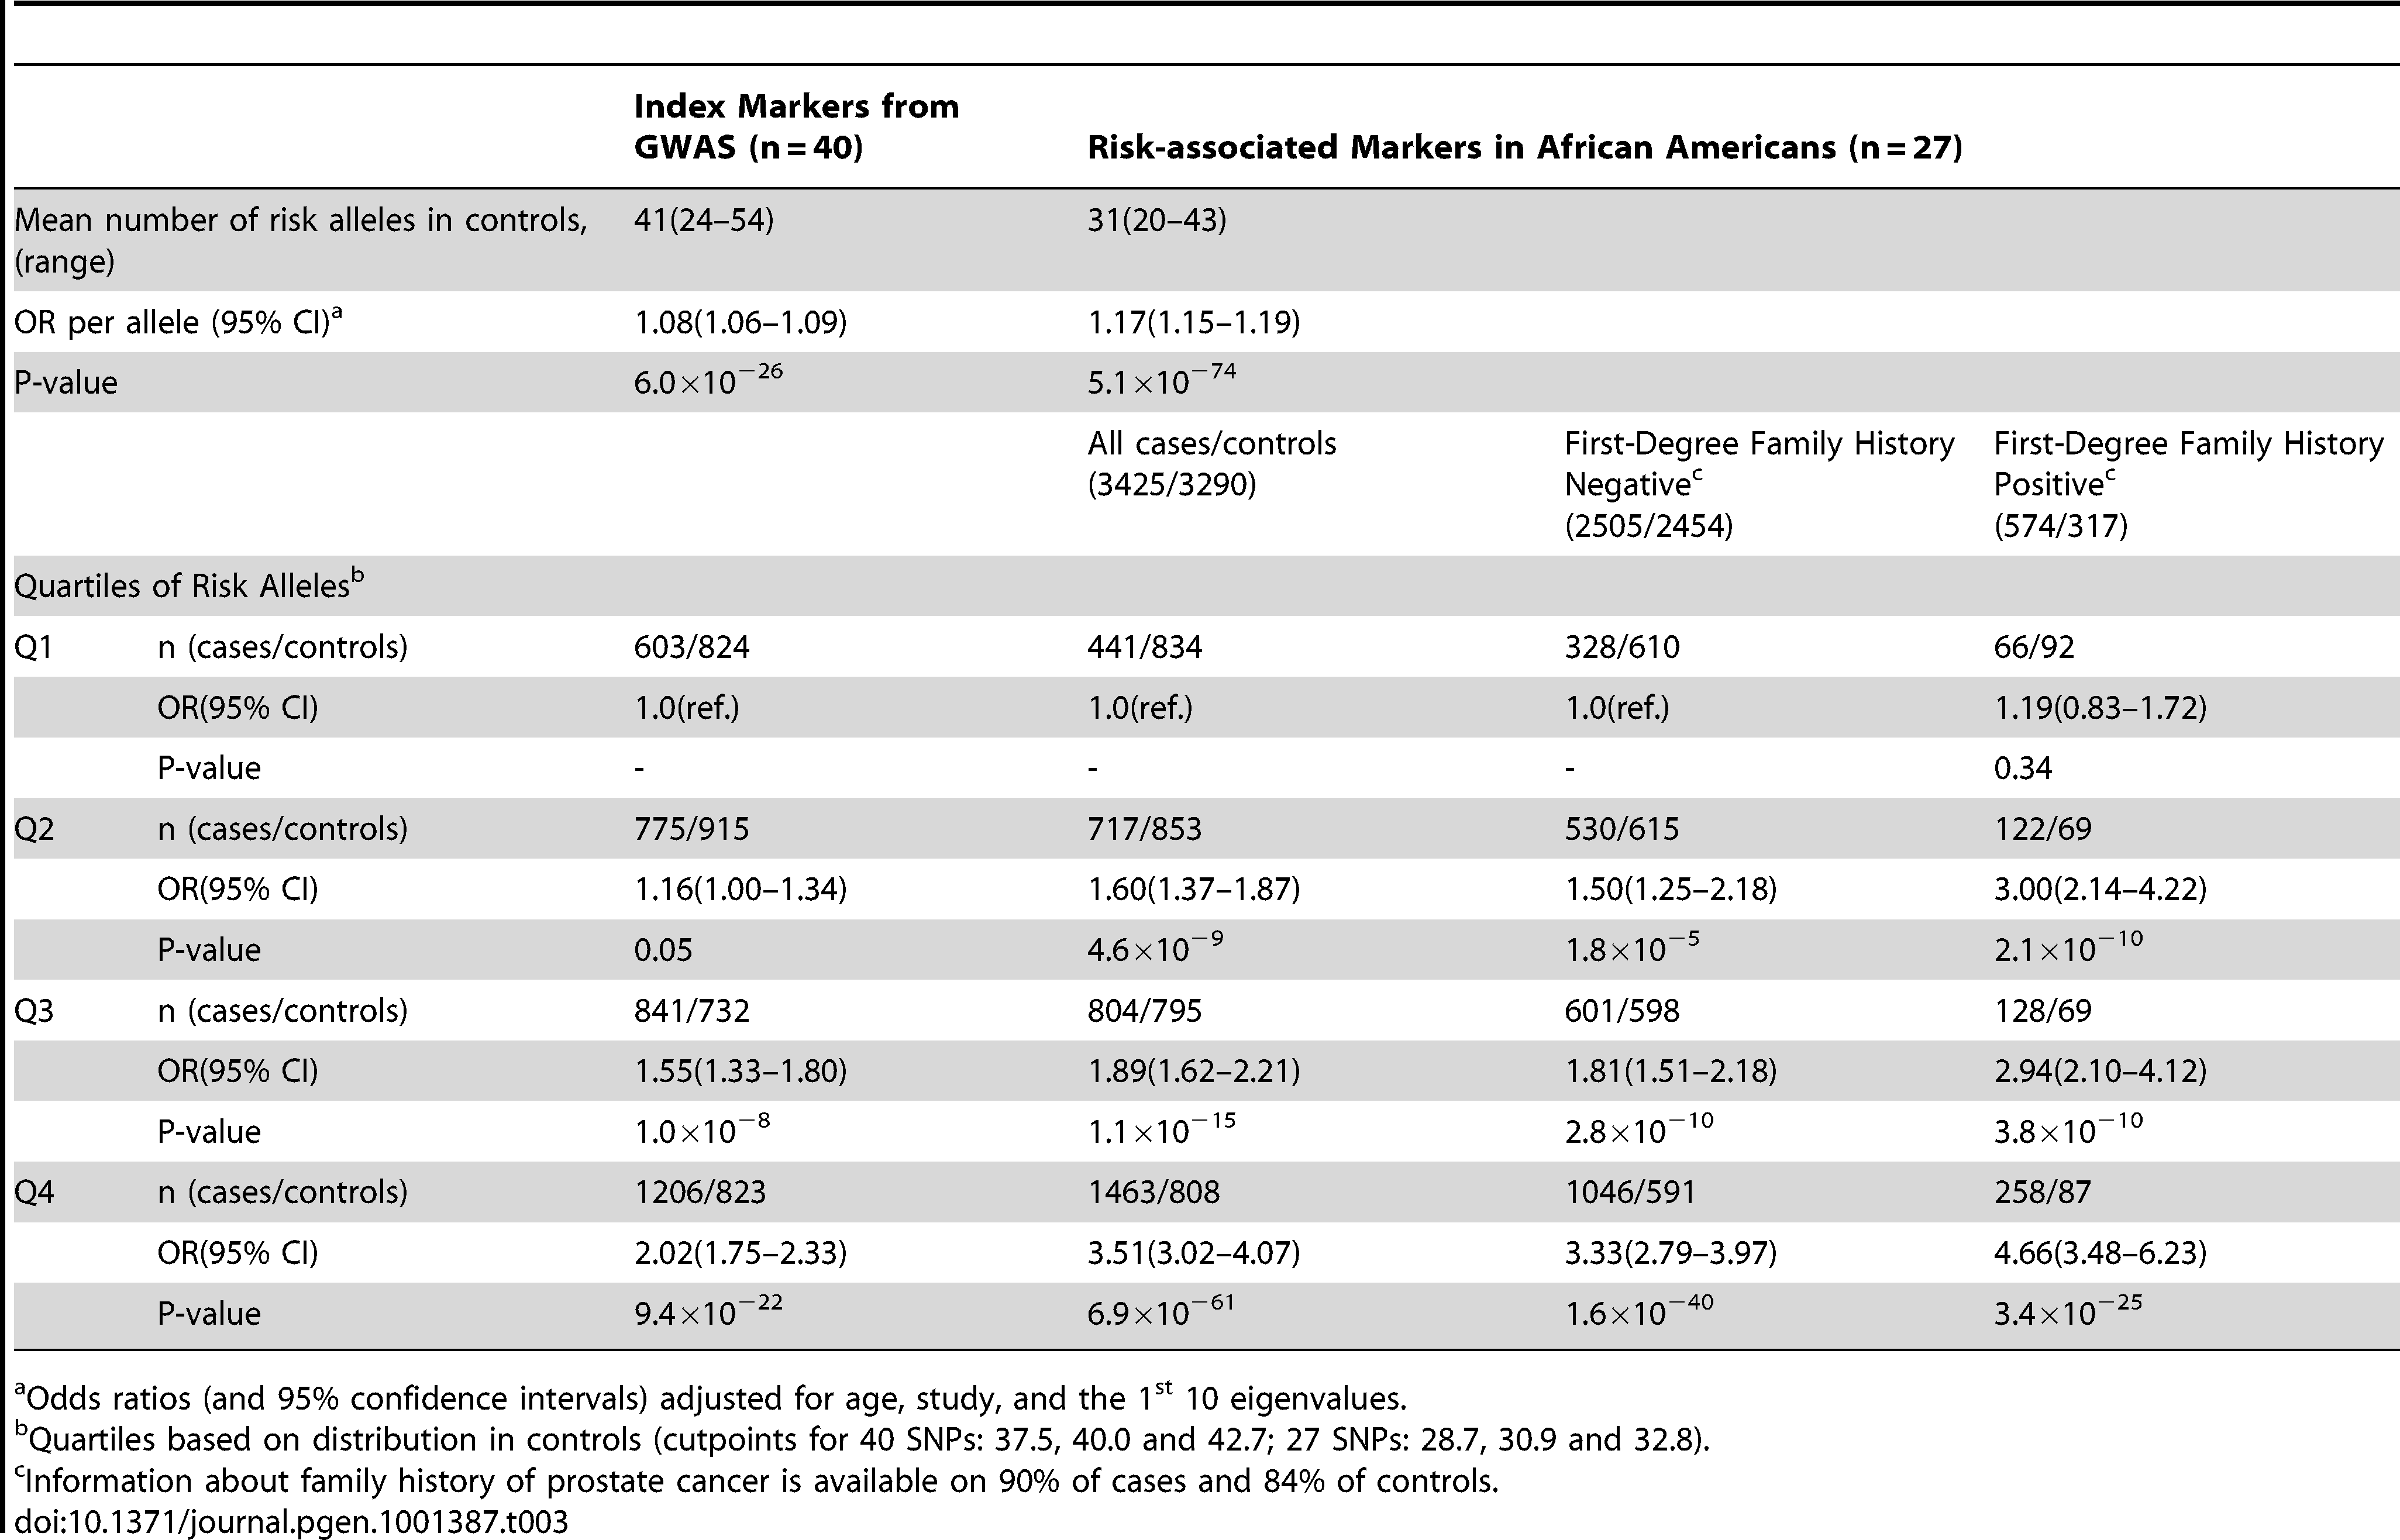 The association of the total risk score with prostate cancer risk in African Americans.